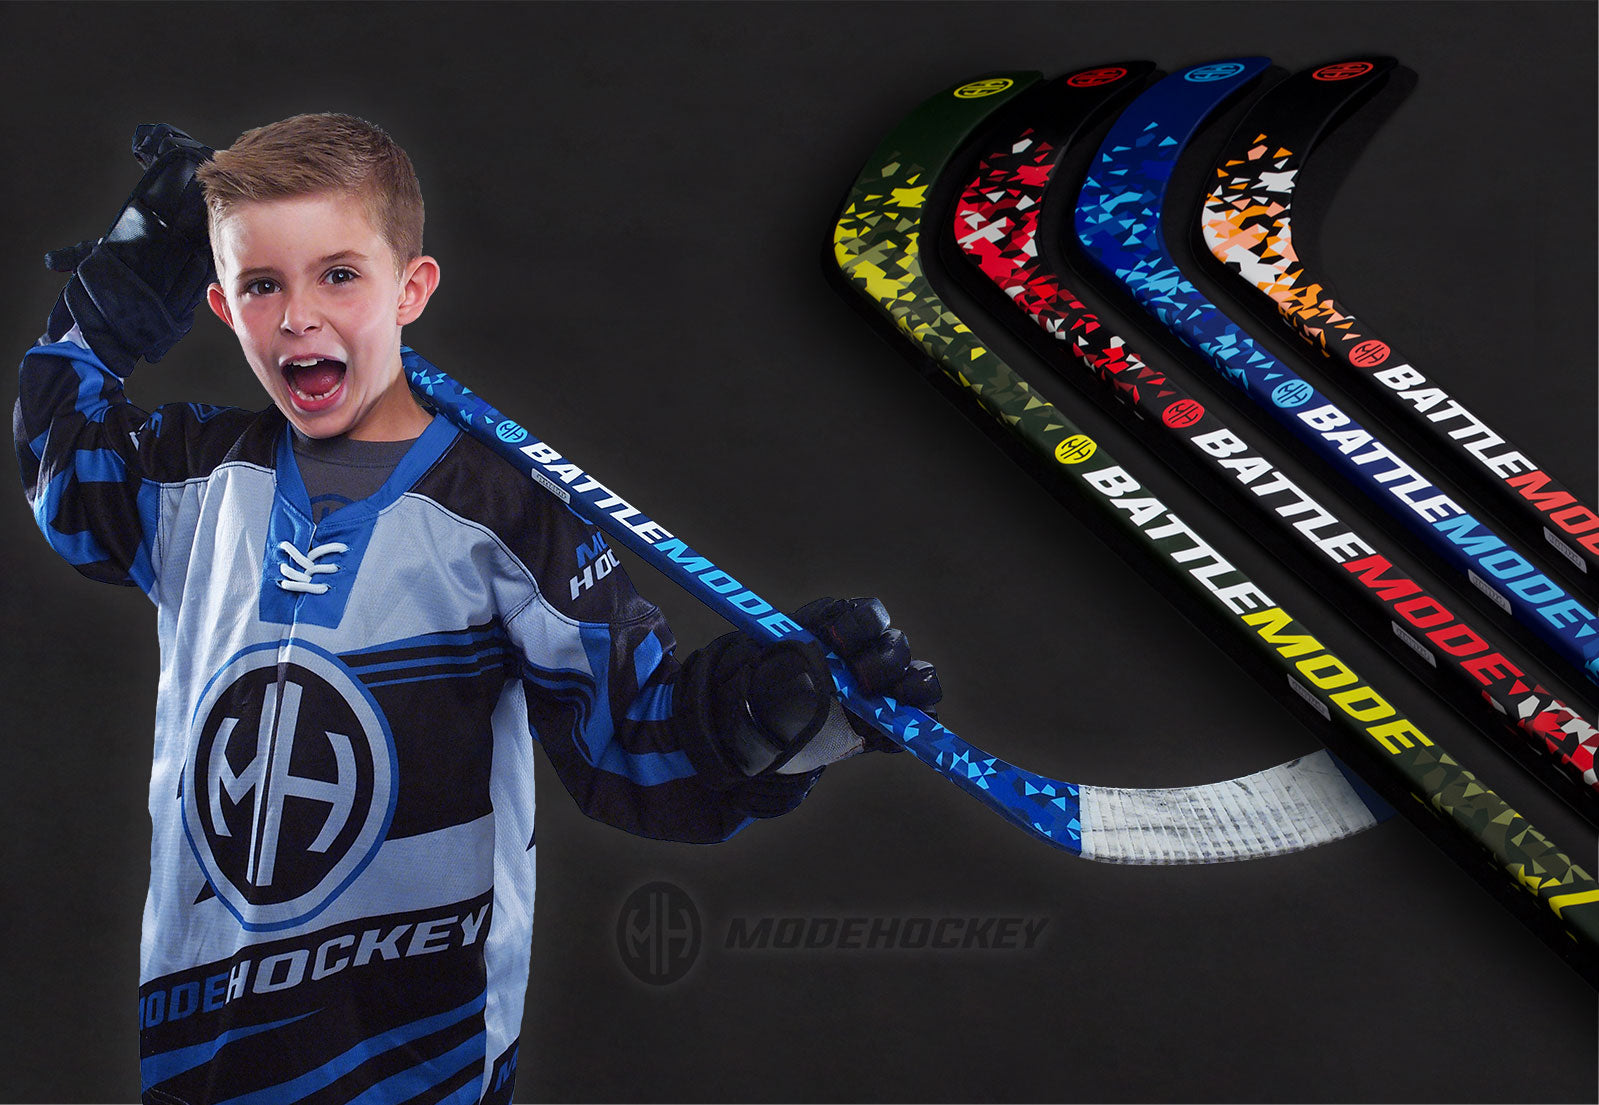 Modehockey junior hockey sticks home page